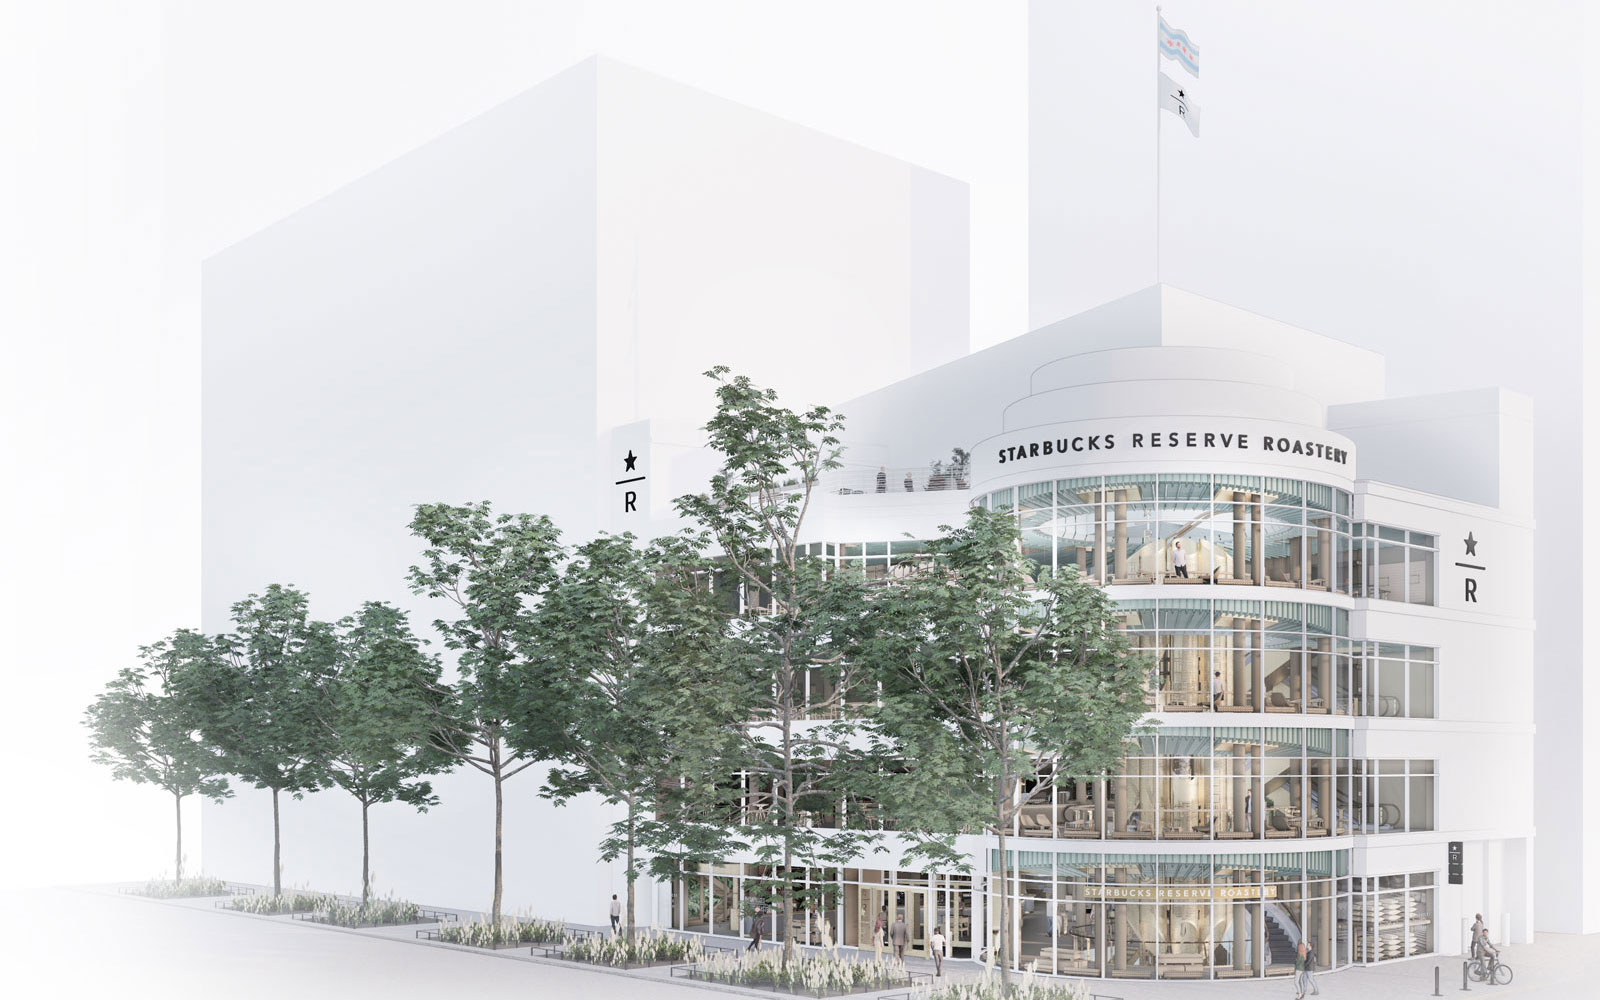 The world's largest Starbucks is opening in Chicago this fall